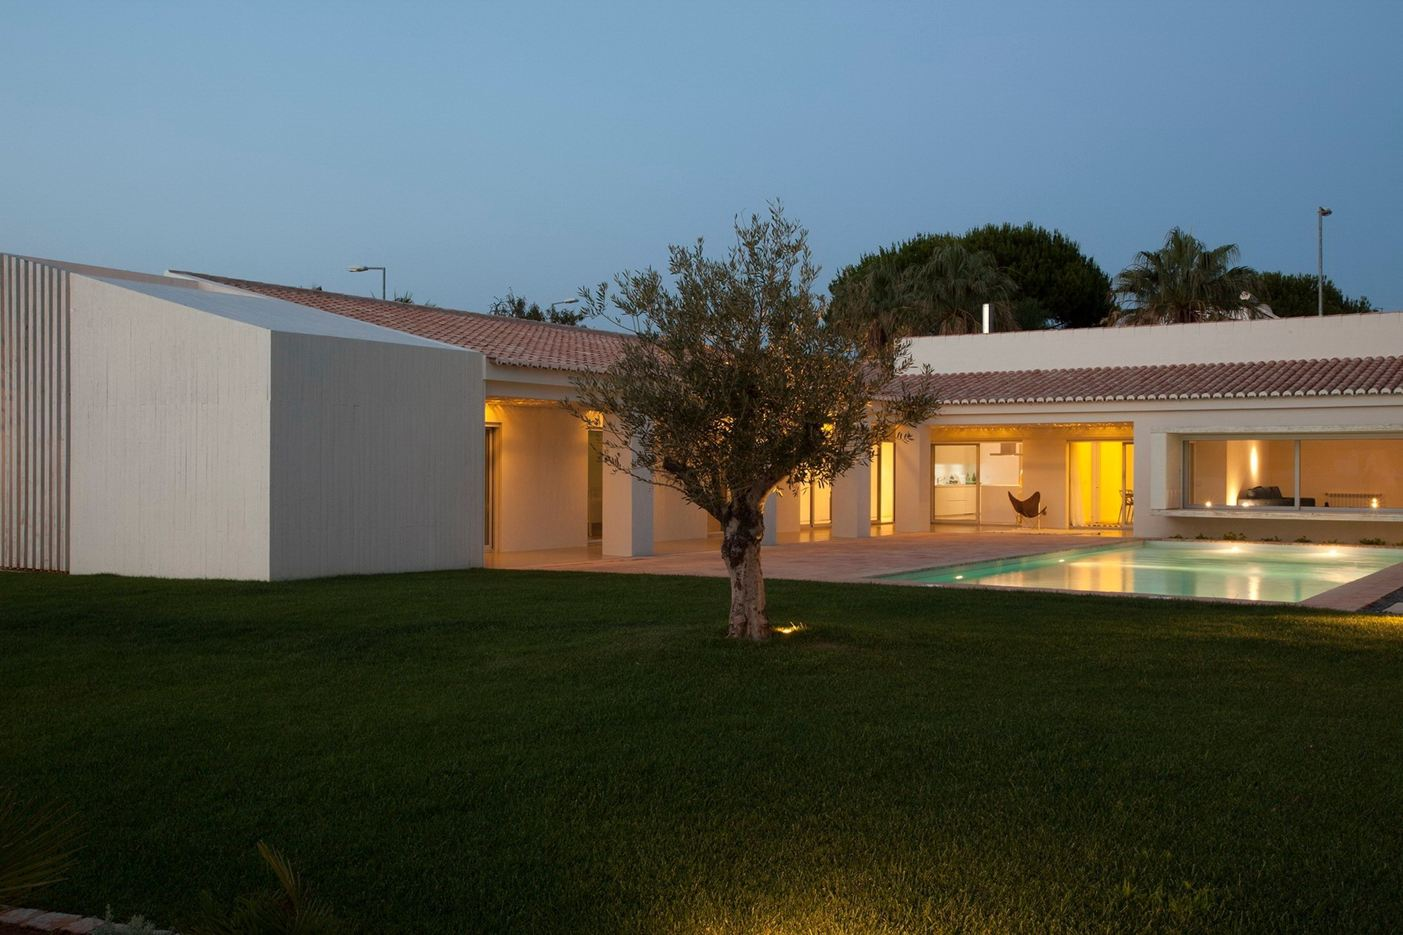 Casa Sol in Vilamoura, Portugal by Atelier Data